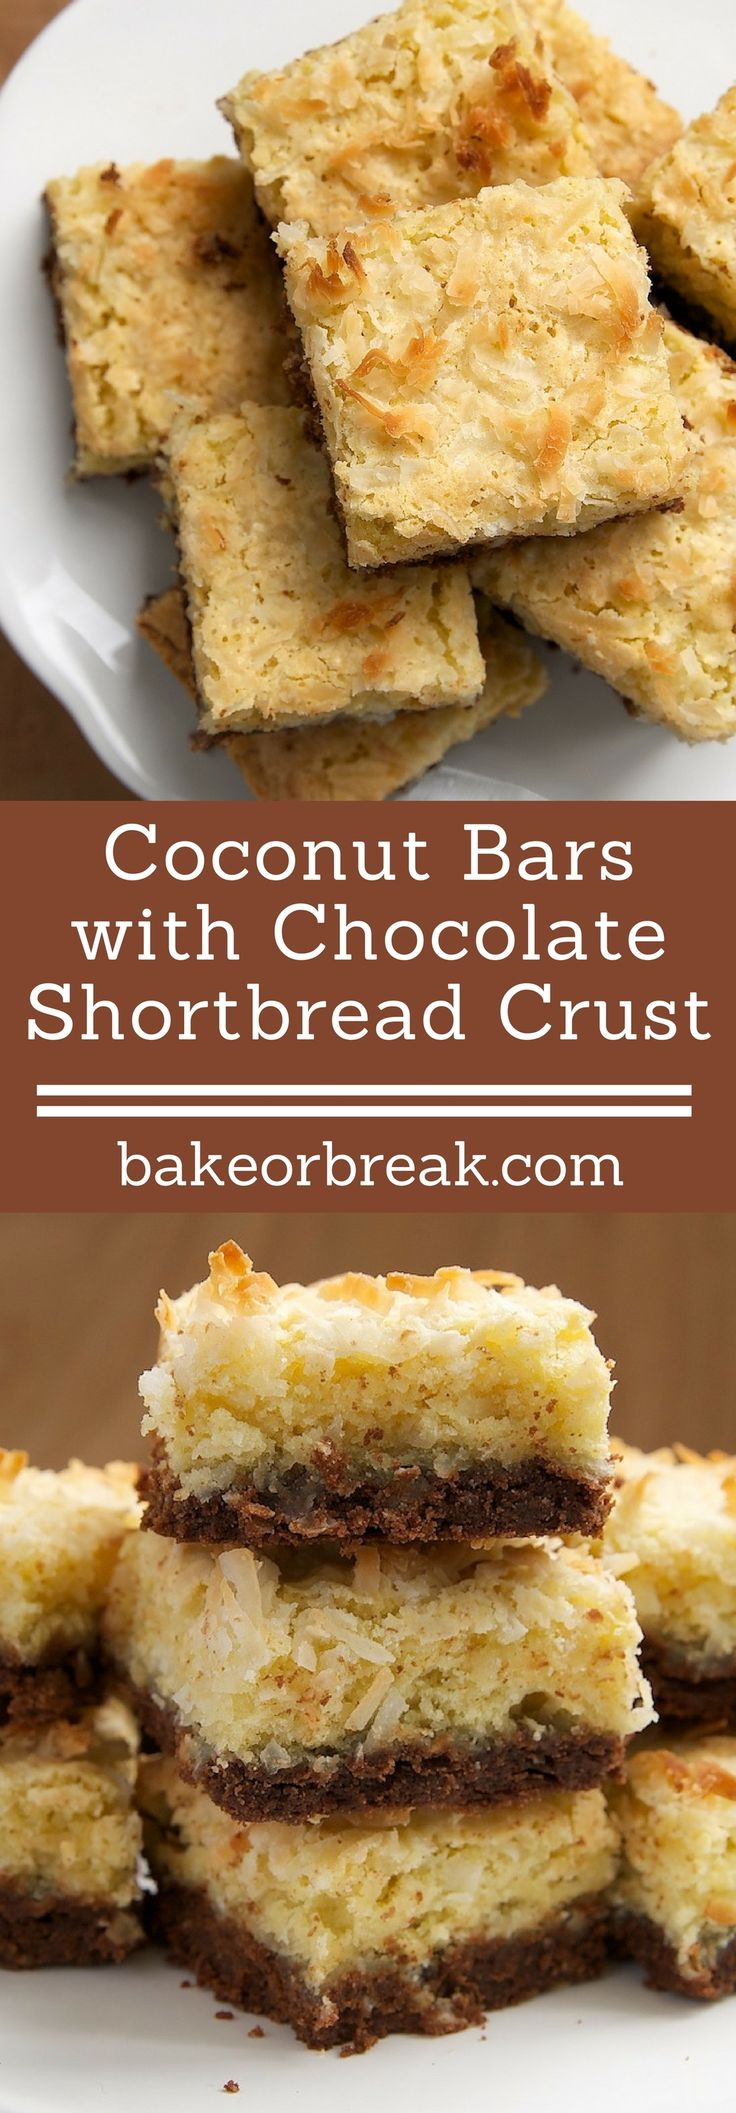 Chocolate and coconut are always a favorite combination. That combo is at its best with Coconut Bars with Chocolate Shortbread Crust. - Bake or Break ~ http://www.bakeorbreak.com